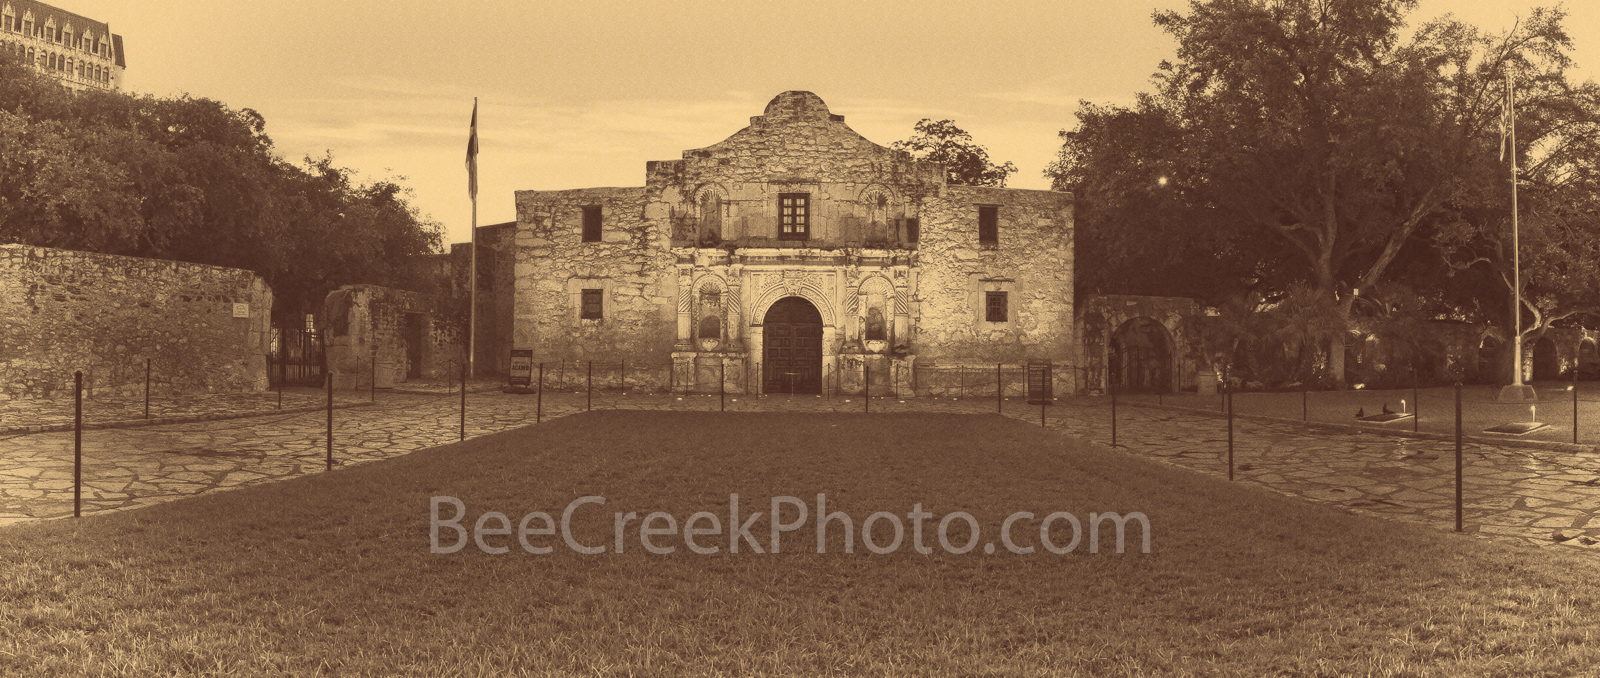 Vintage Alamo Panorama - San Antonio landscape on prints, canvas and metal. We captured the Alamo in San Antonio Texas at sunrise...